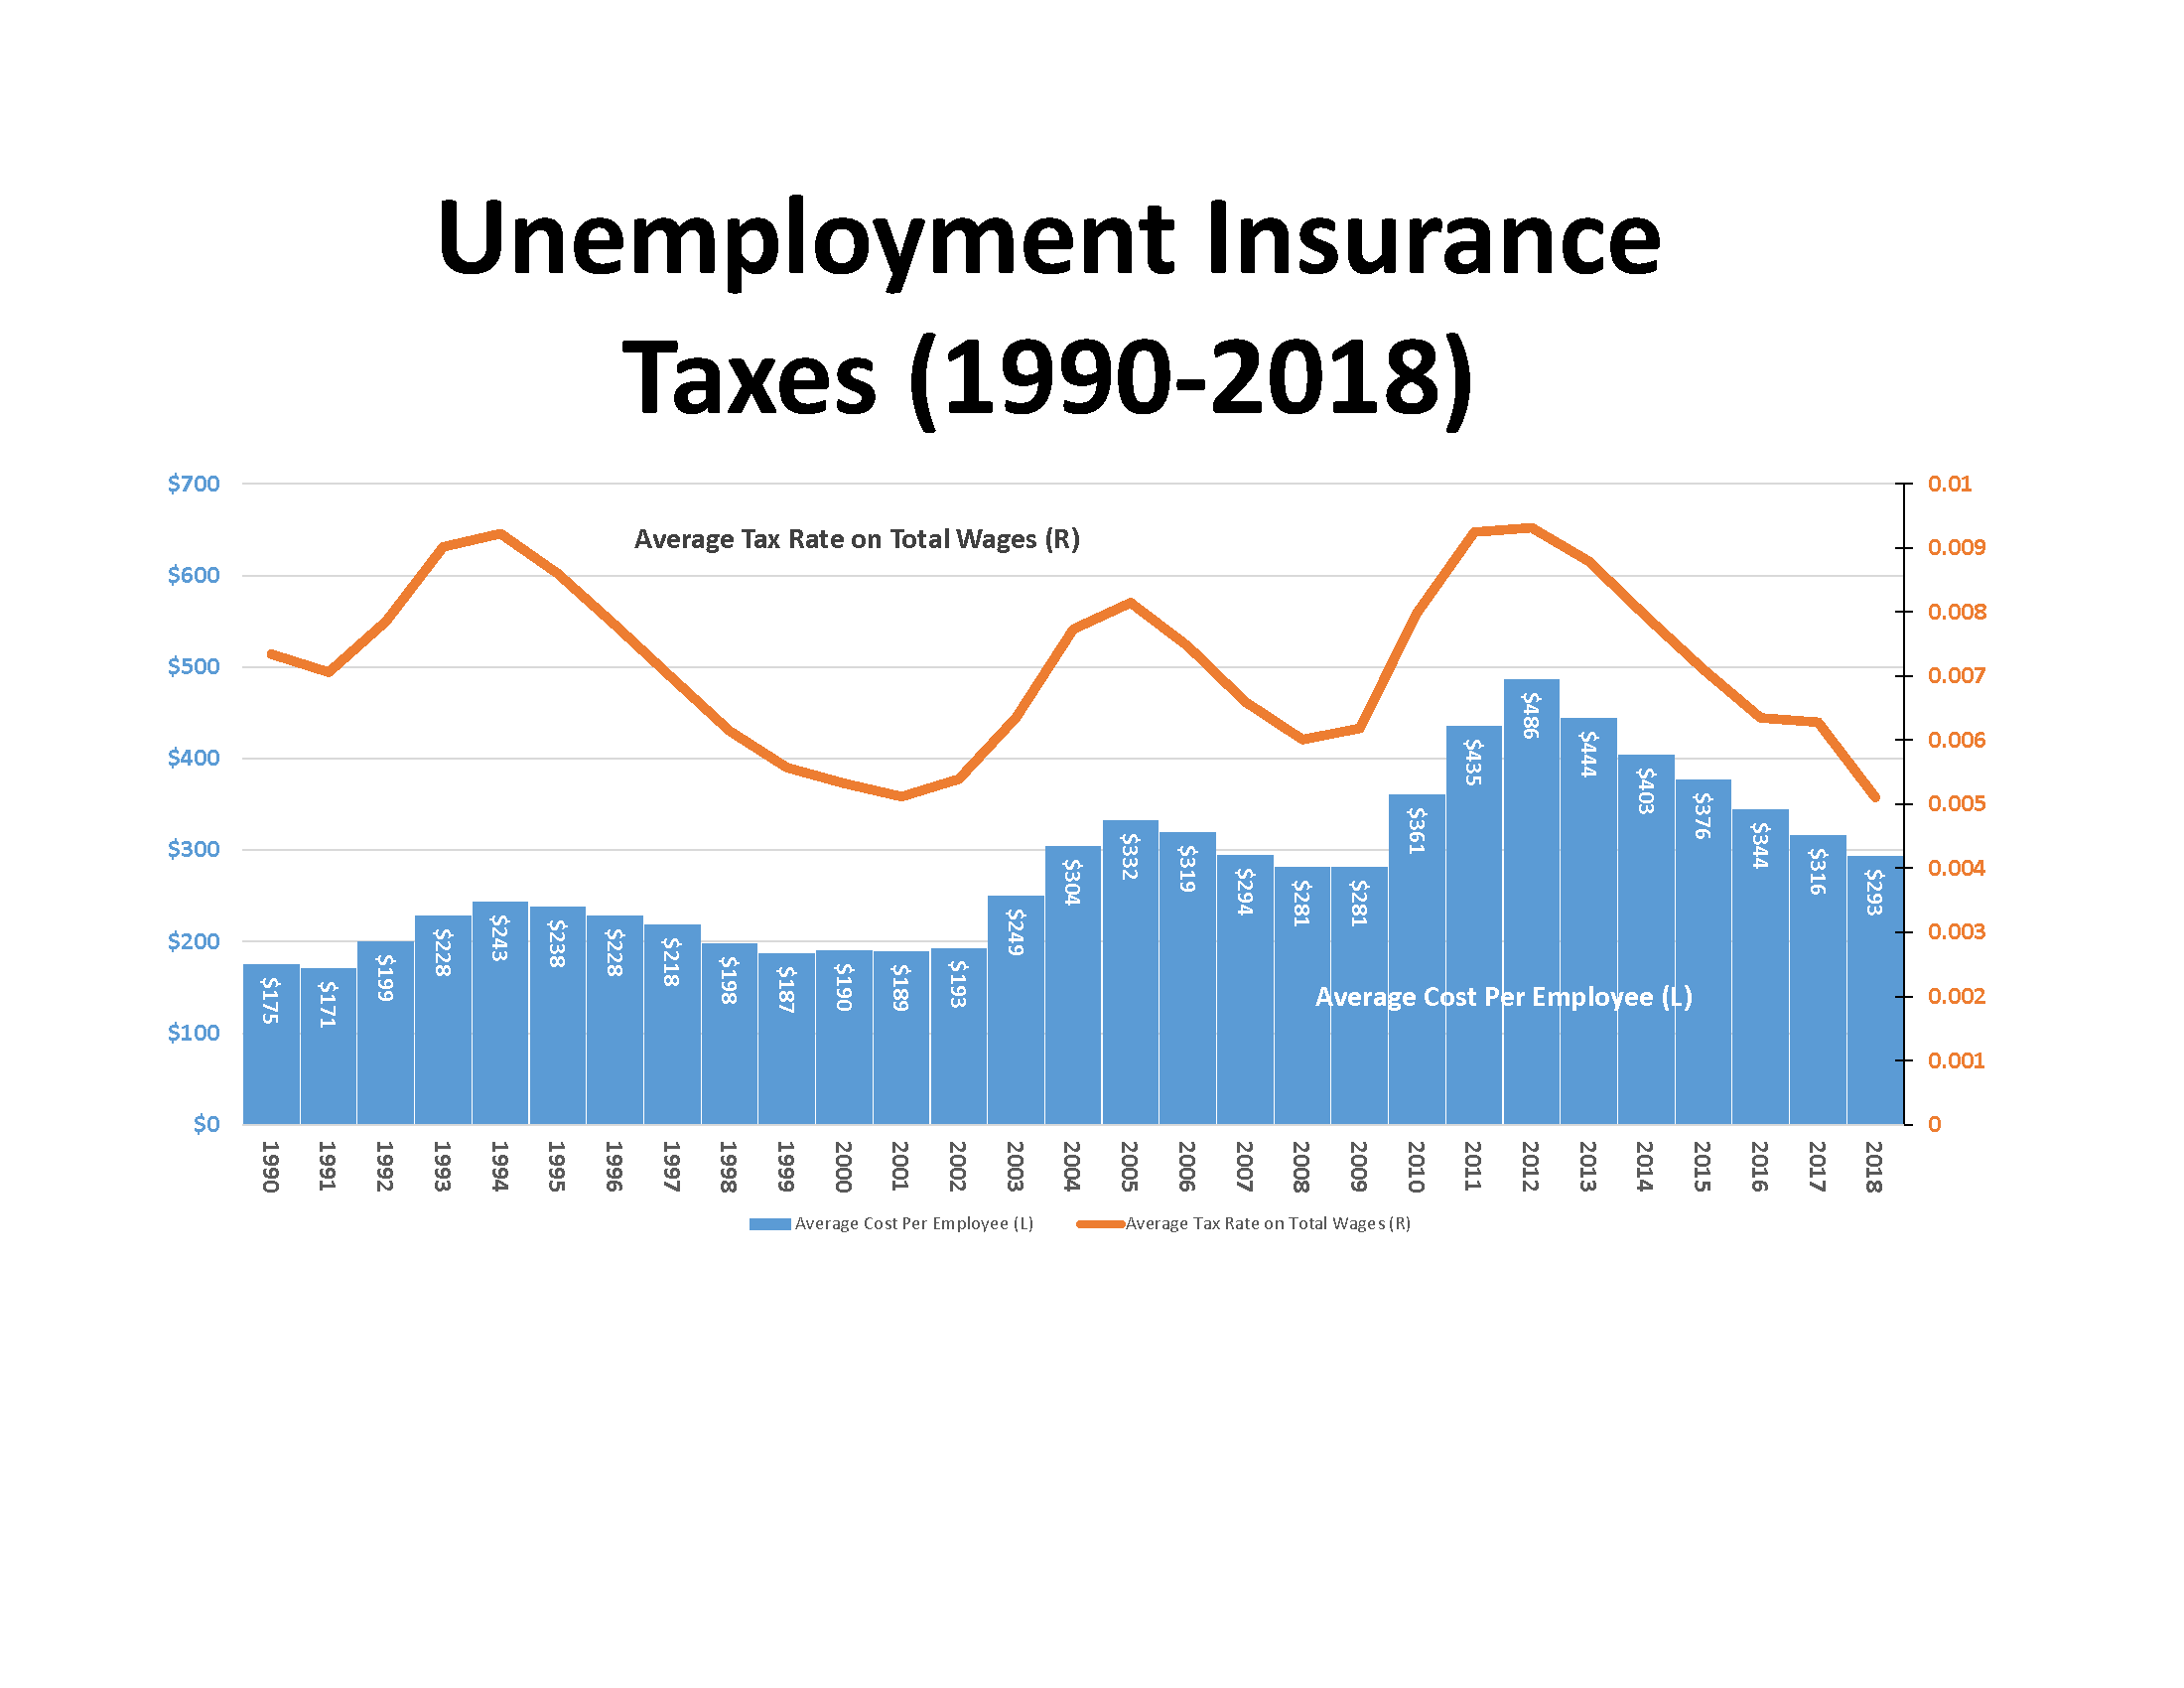 Unemployment Insurance Average Tax Rate and Average Cost Per Employee